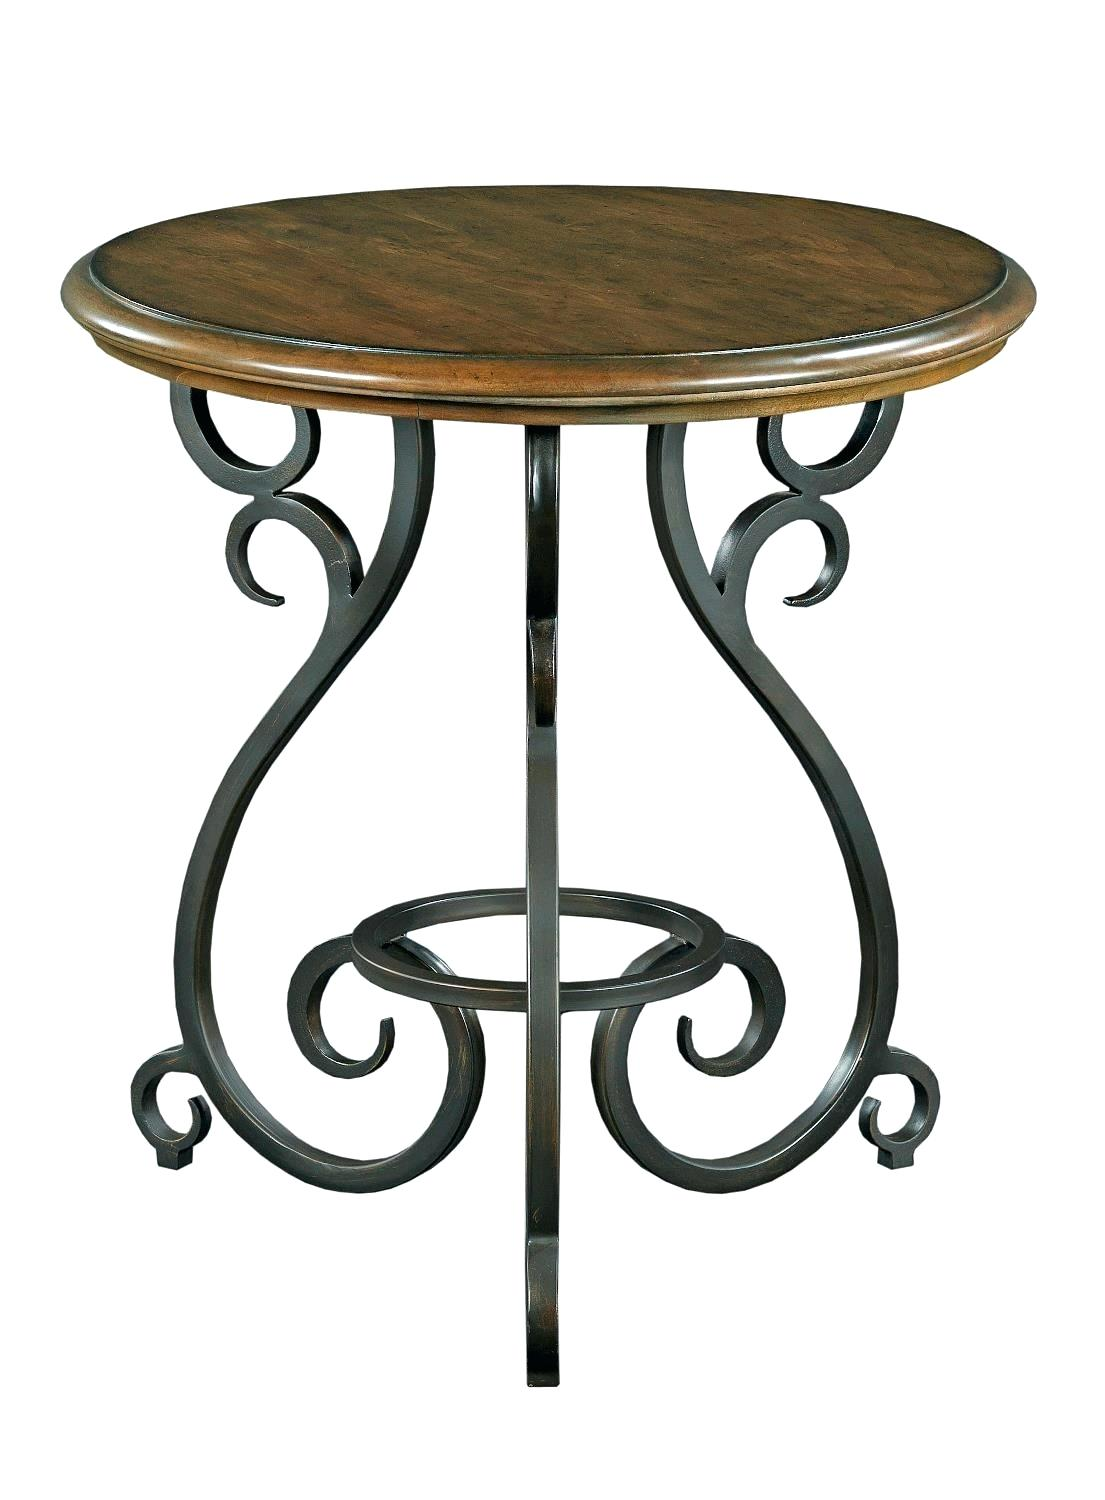 privilege gold iron accent table liked featuring home furniture traditional round with old world cast base mosaic black outdoor manor solid ikea file box small metal patio side